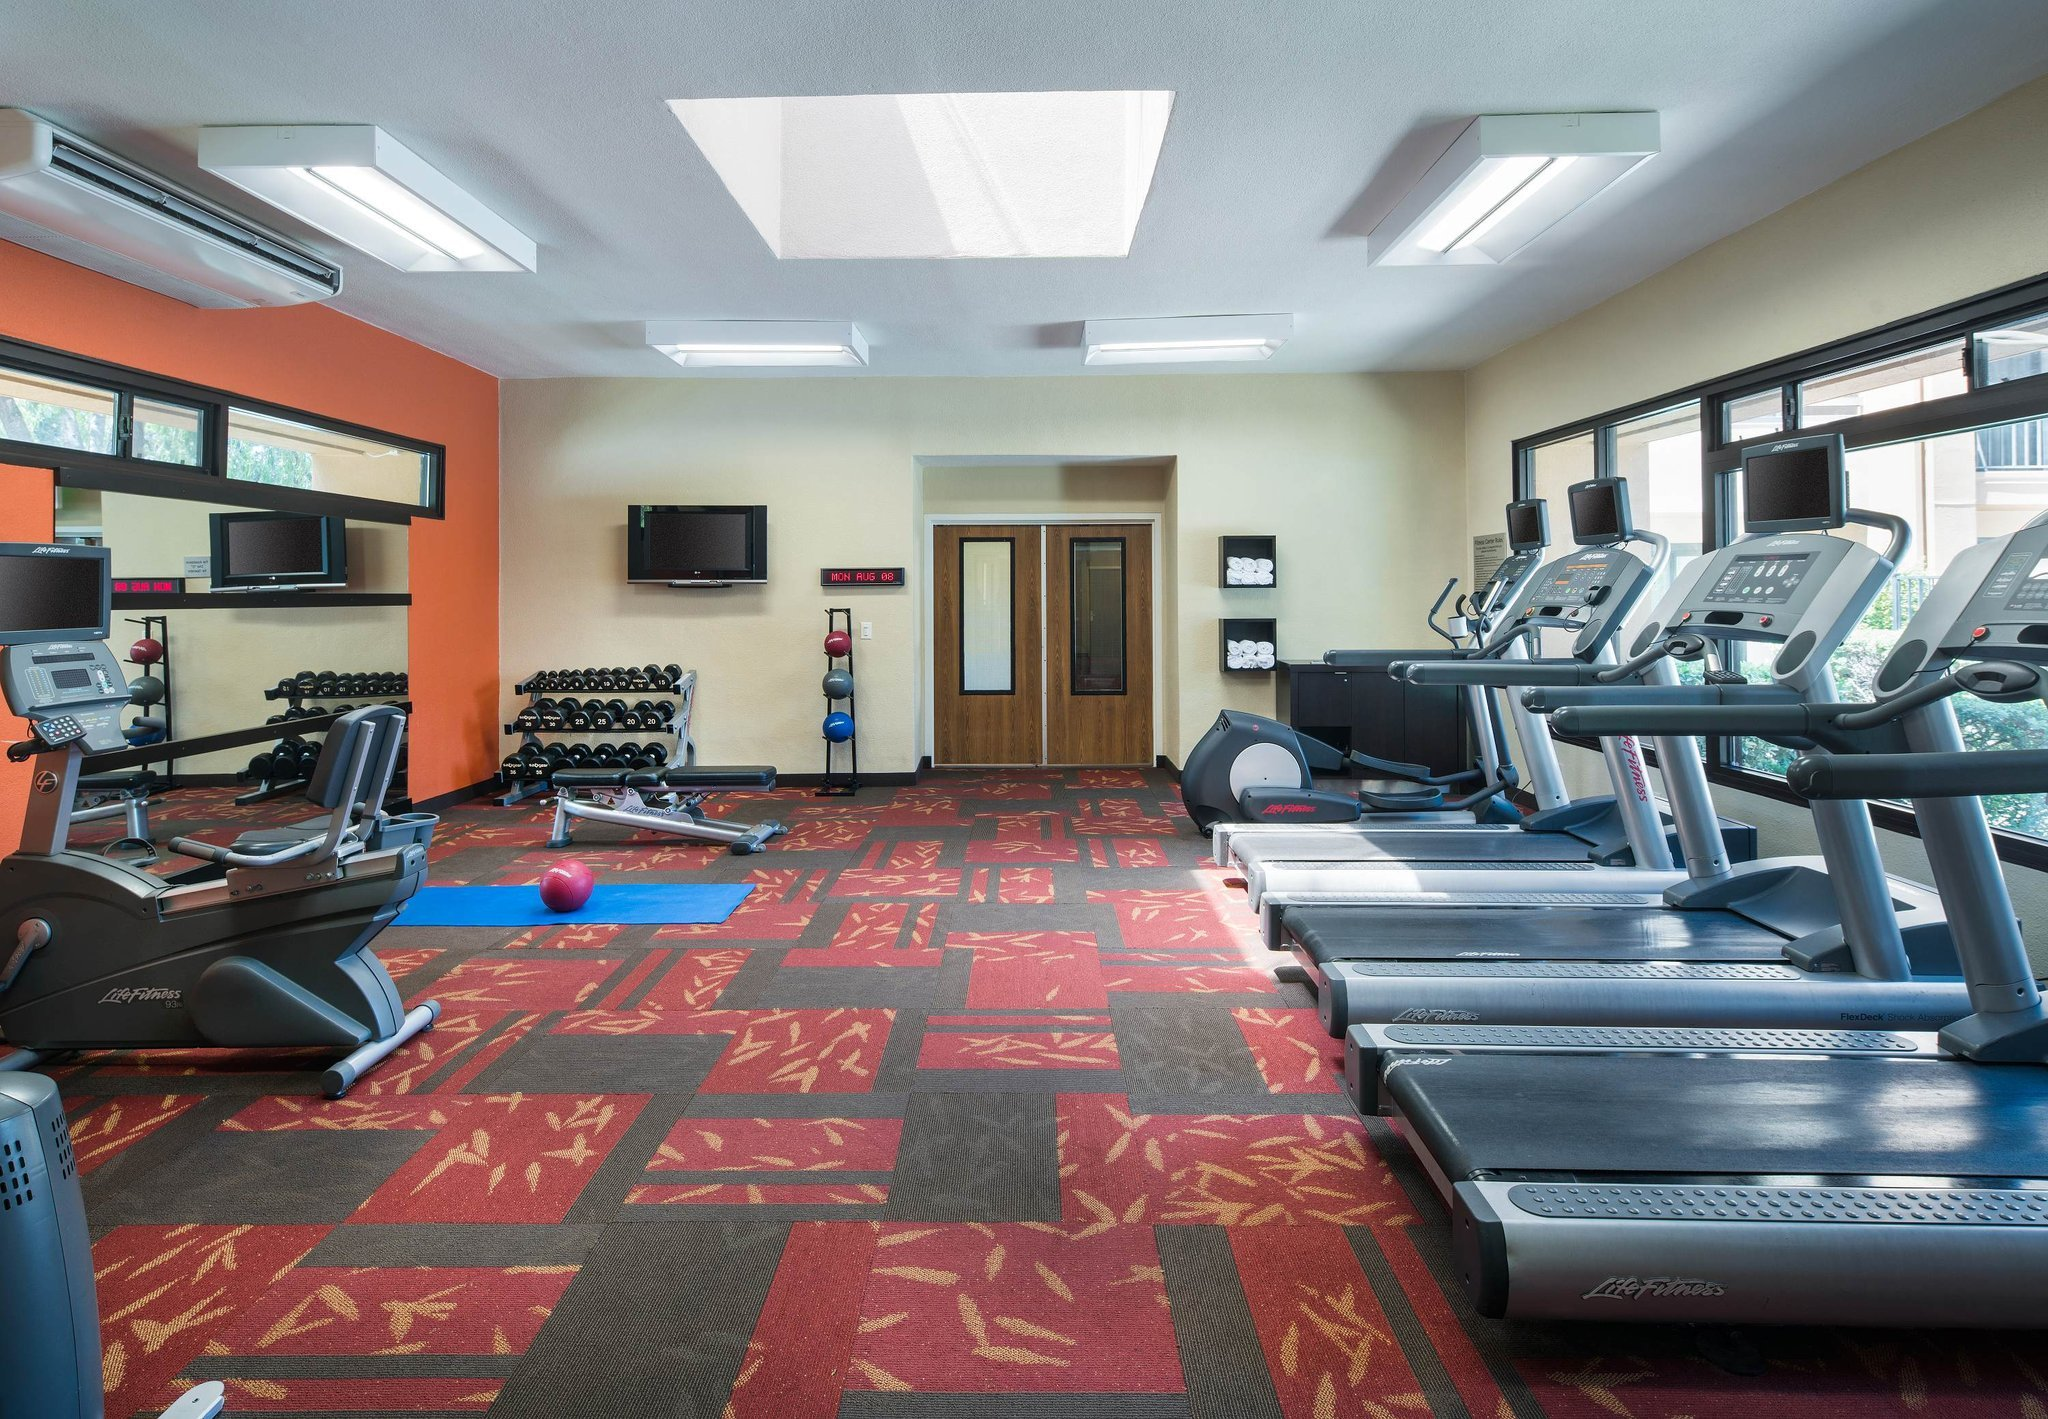 https://media-cdn.tripadvisor.com/media/photo-o/0e/71/8e/df/fitness-center.jpg